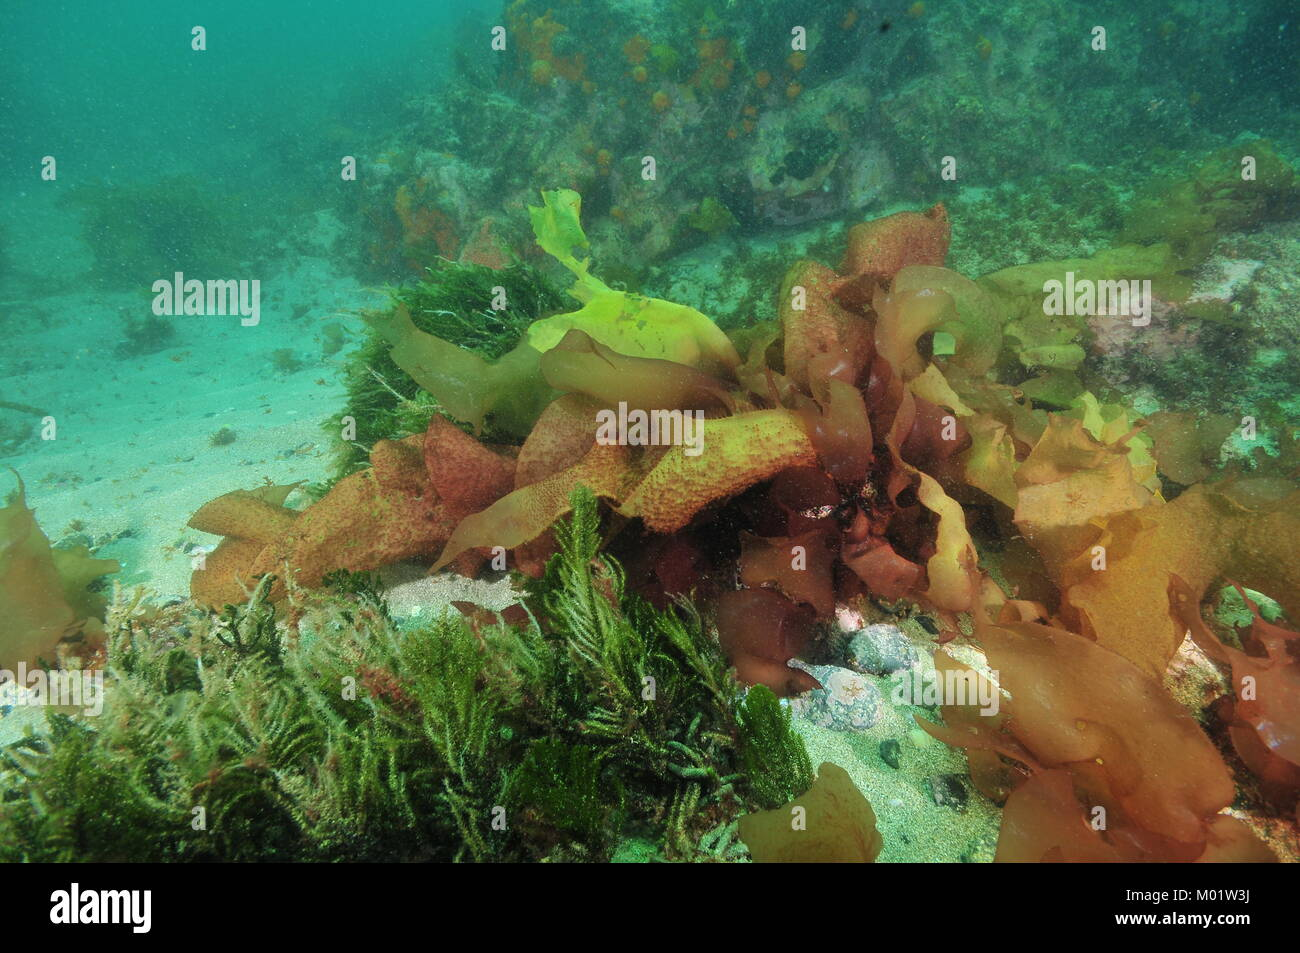 Seaweeds and kelp of various colors in murky water on bottom where rocky reef meets sand. - Stock Image